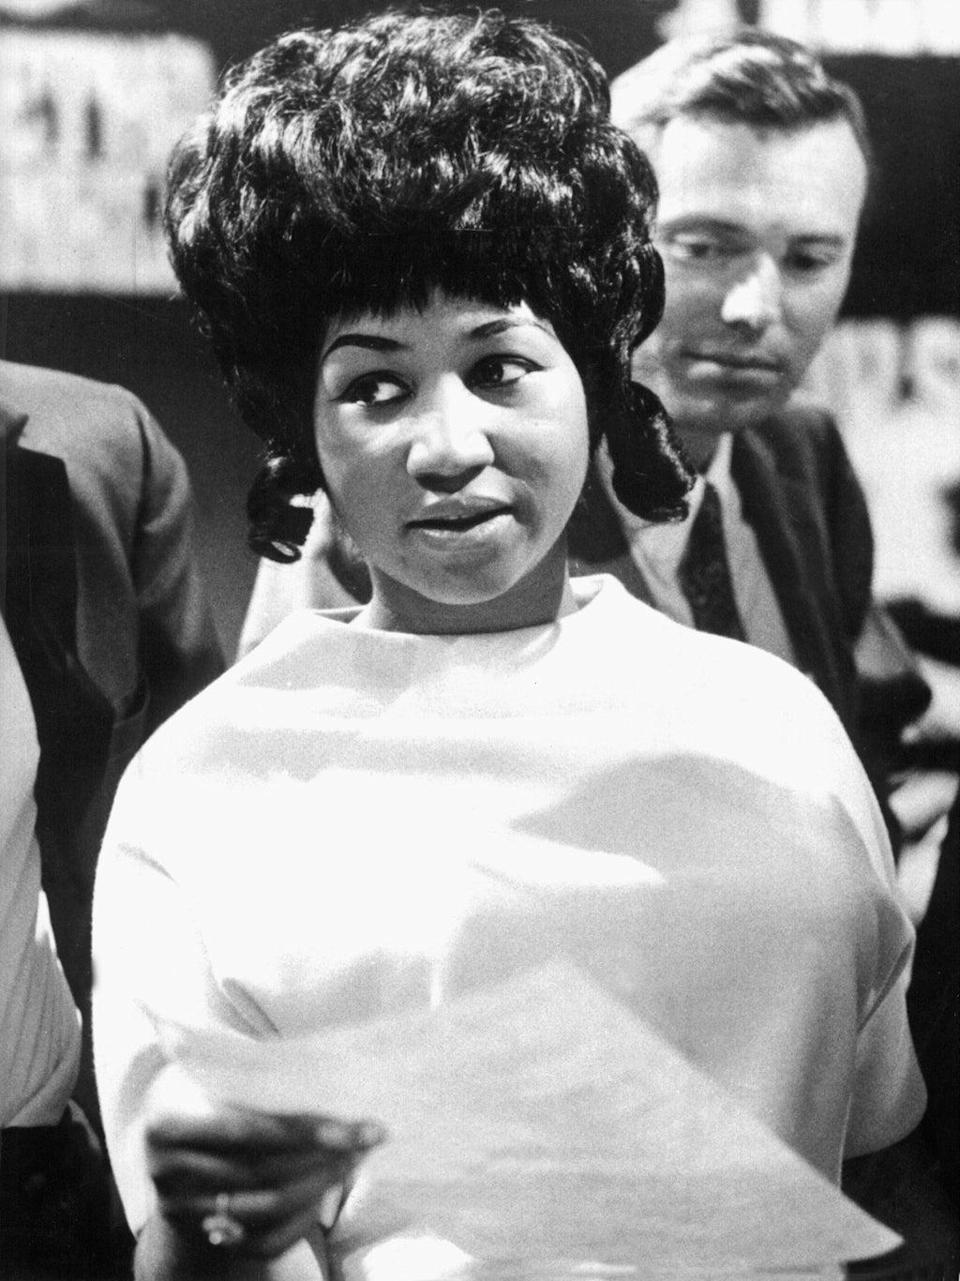 KK9X3J The American blues and soul singer Aretha Franklin during recordings for a TV show in a Cologne studio, pictured on 13th May 1968.   usage worldwide